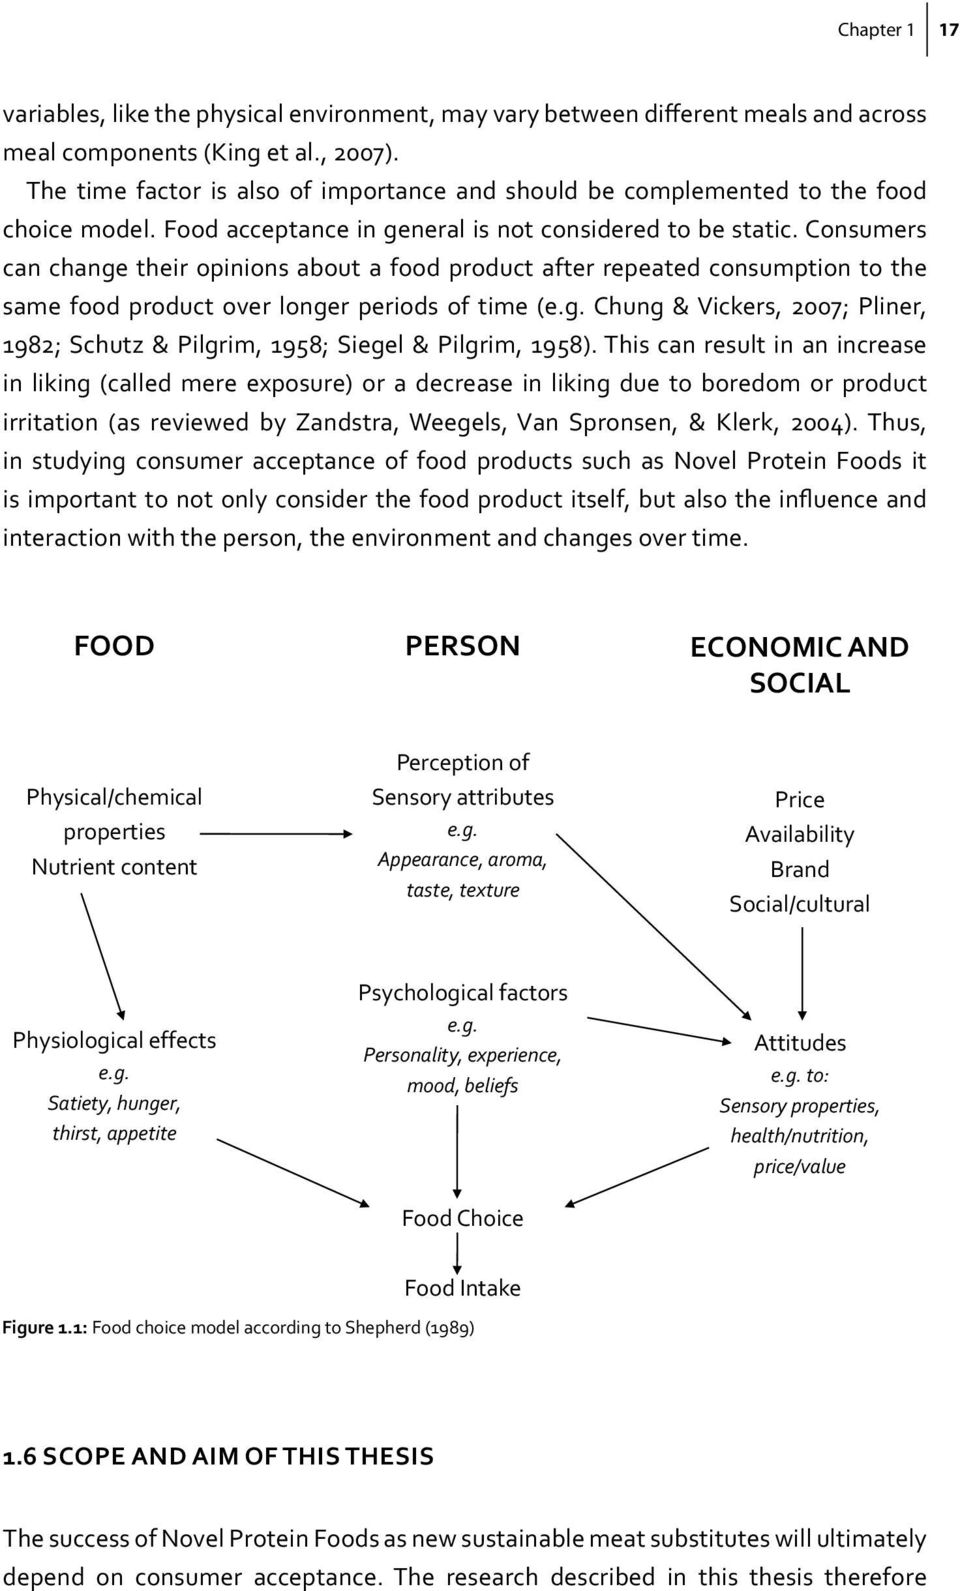 Consumers can change their opinions about a food product after repeated consumption to the same food product over longer periods of time (e.g. Chung & Vickers, 2007; Pliner, 1982; Schutz & Pilgrim, 1958; Siegel & Pilgrim, 1958).